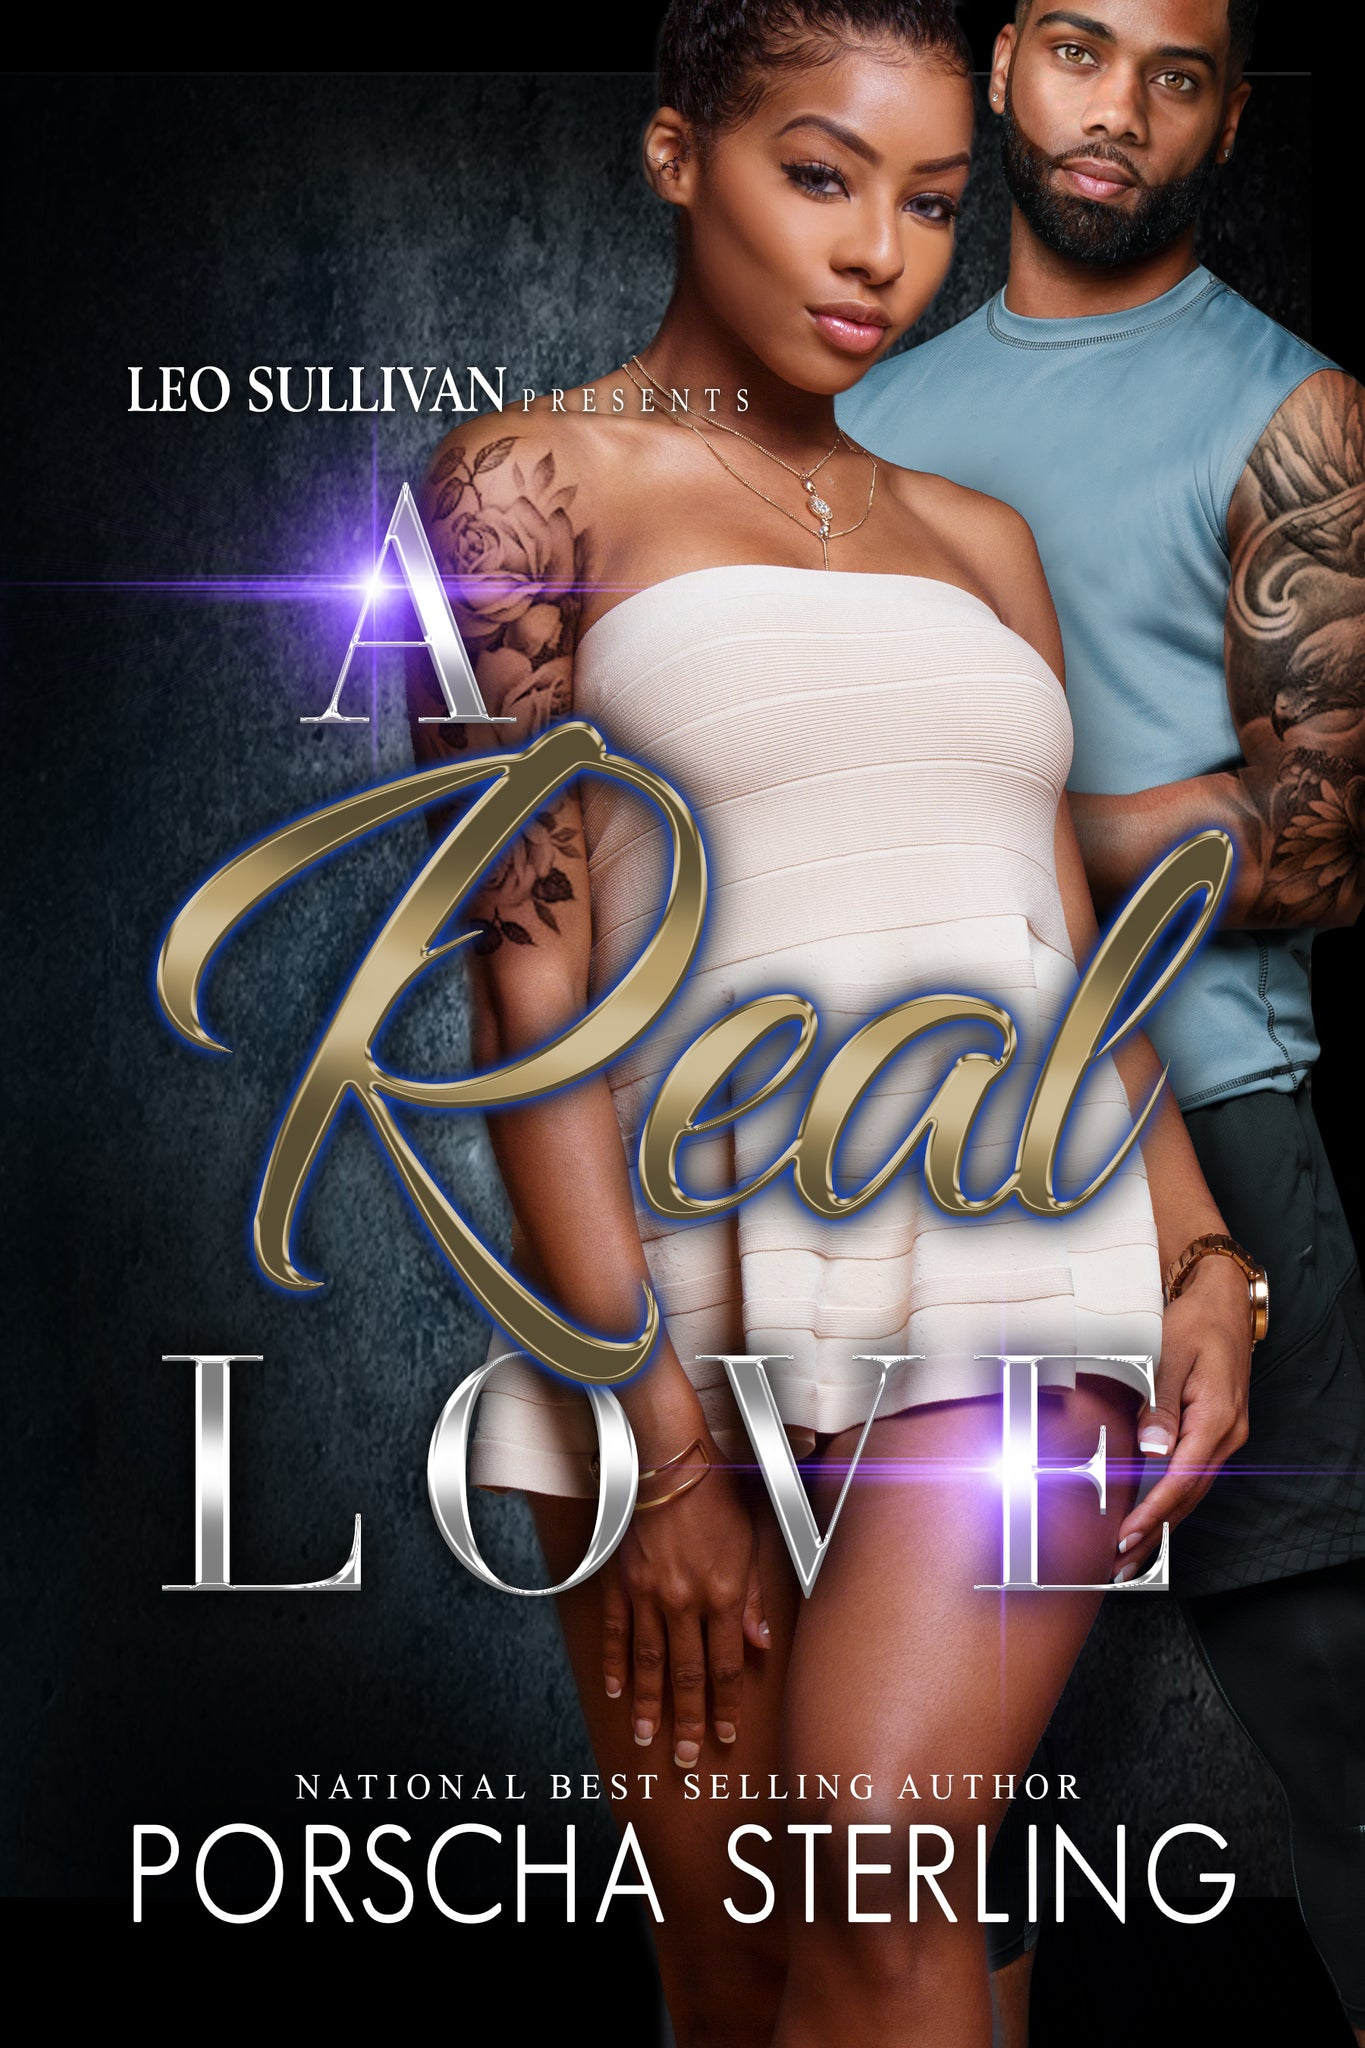 A Real Love 2 (eBook)